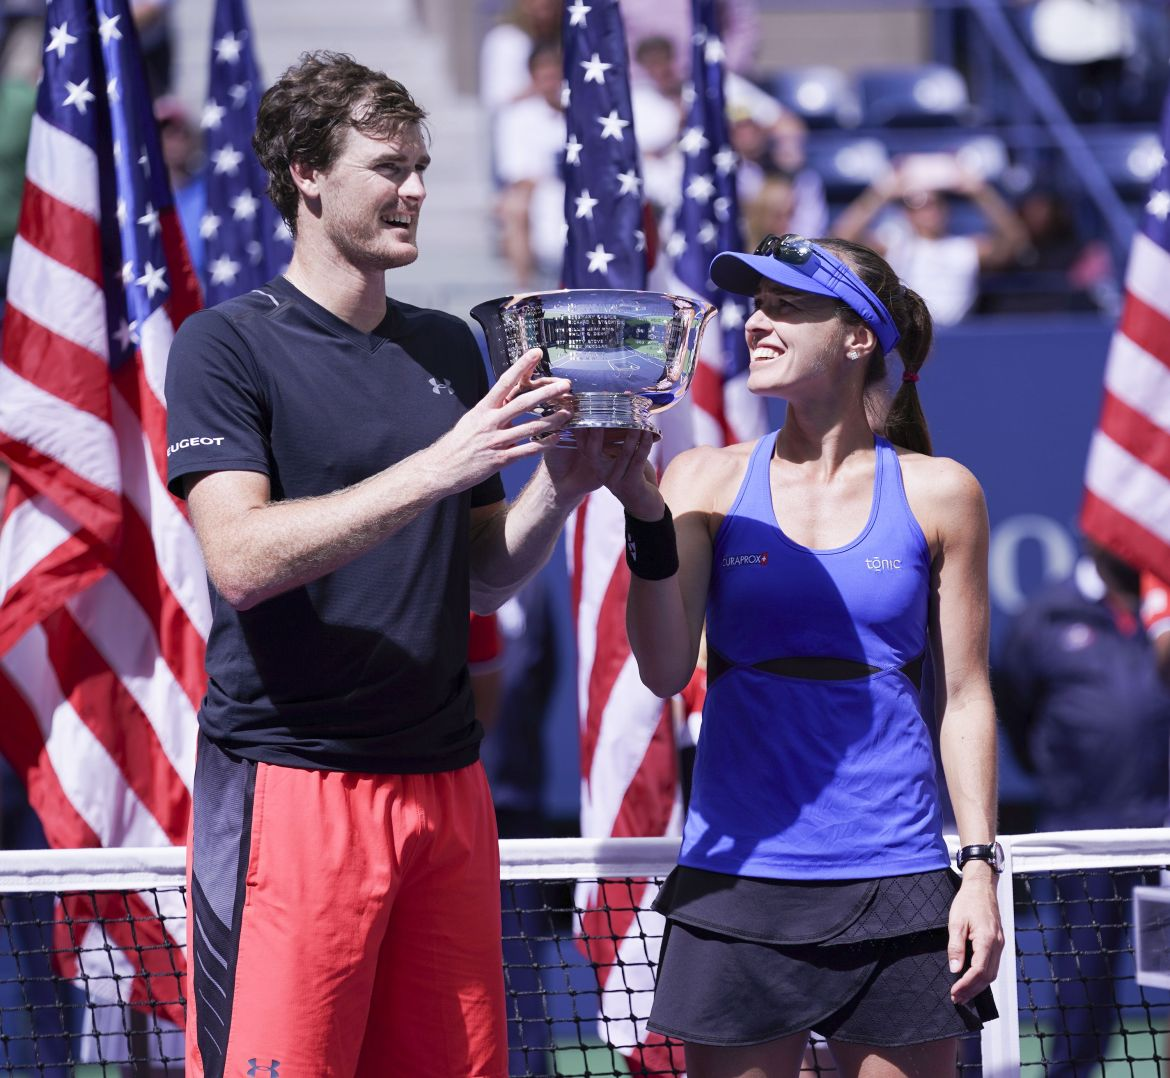 Martina Hingis and Jamie Murray beat Michael Venus and Chan Hao-Ching to win the Mixed Doubles Final at the US Open (Phot: Lev Radin)